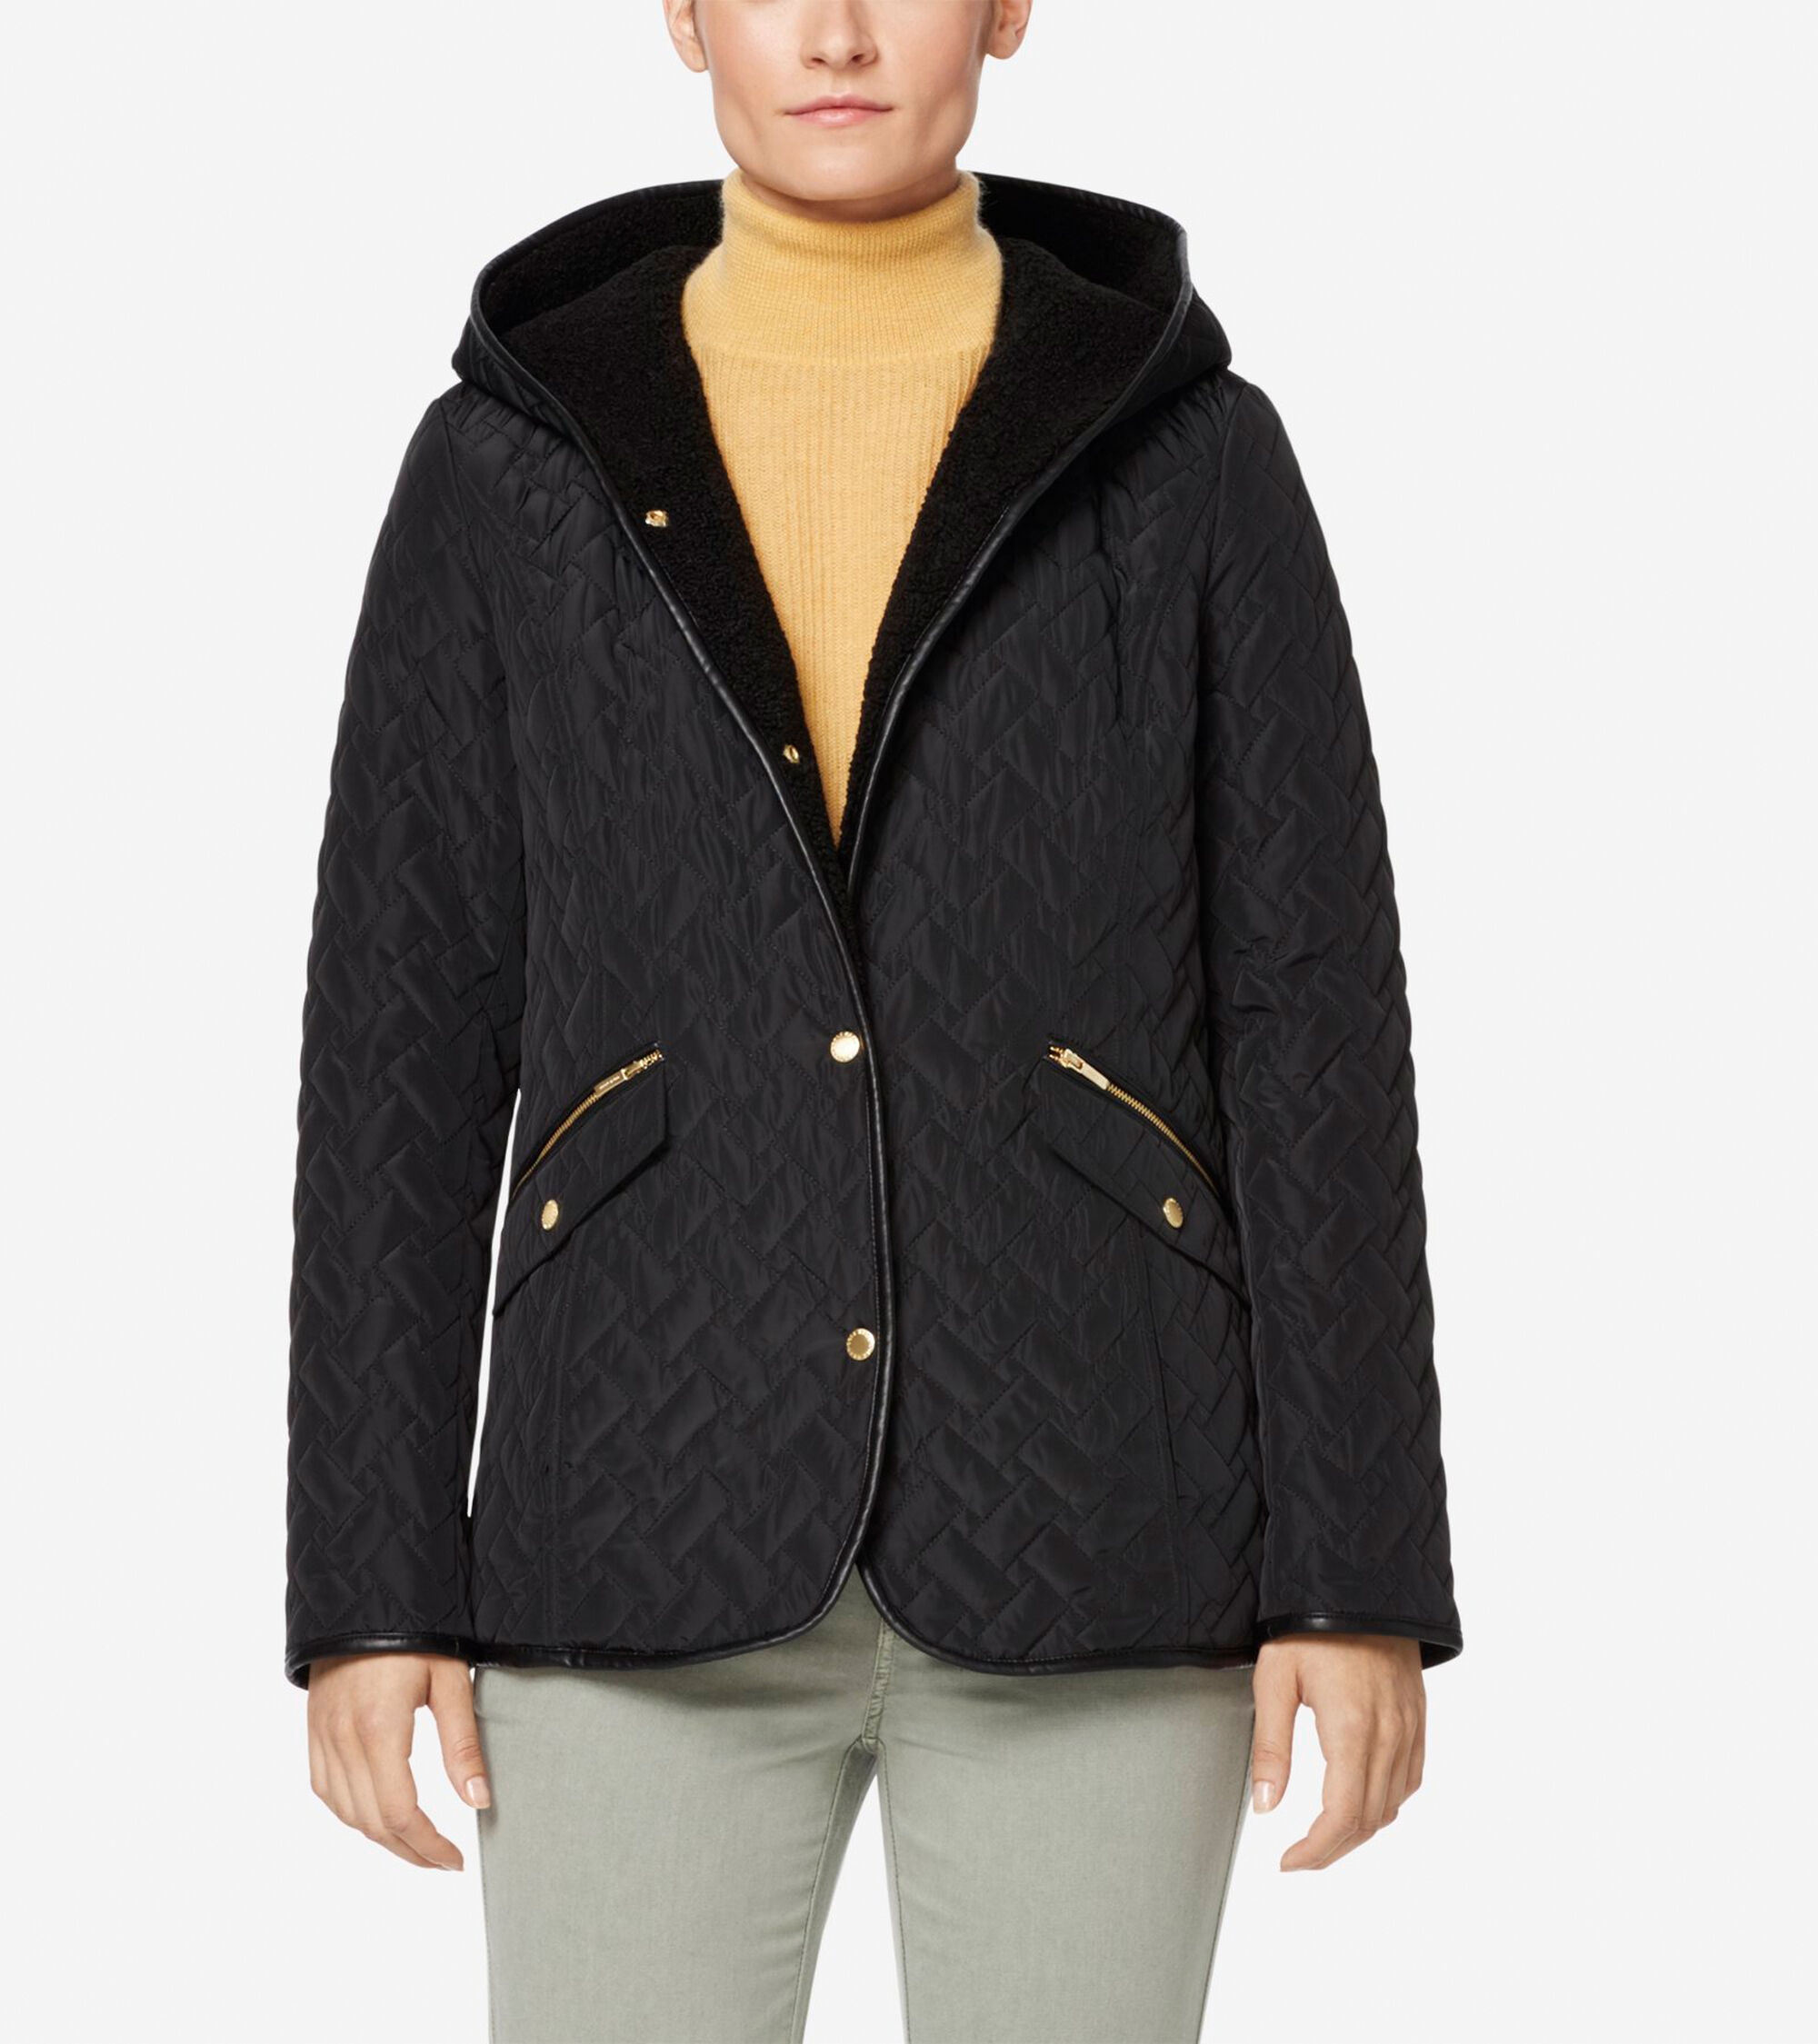 Womens Signature Sherpa Lined Quilted Jacket In Black Cole Haan